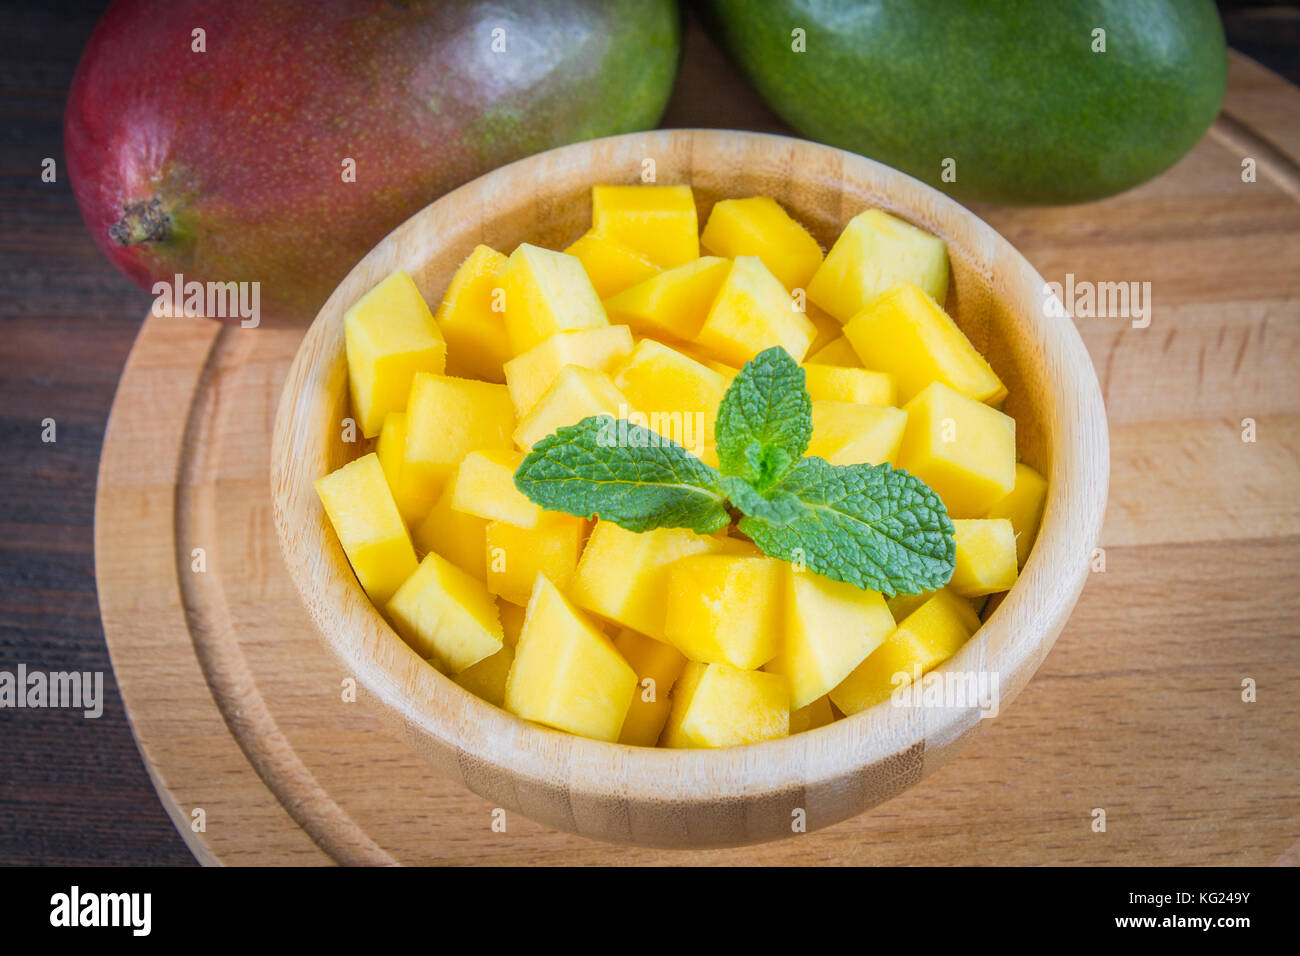 Tropical fruit mango in a plate on a wooden background, whole or sliced Stock Photo